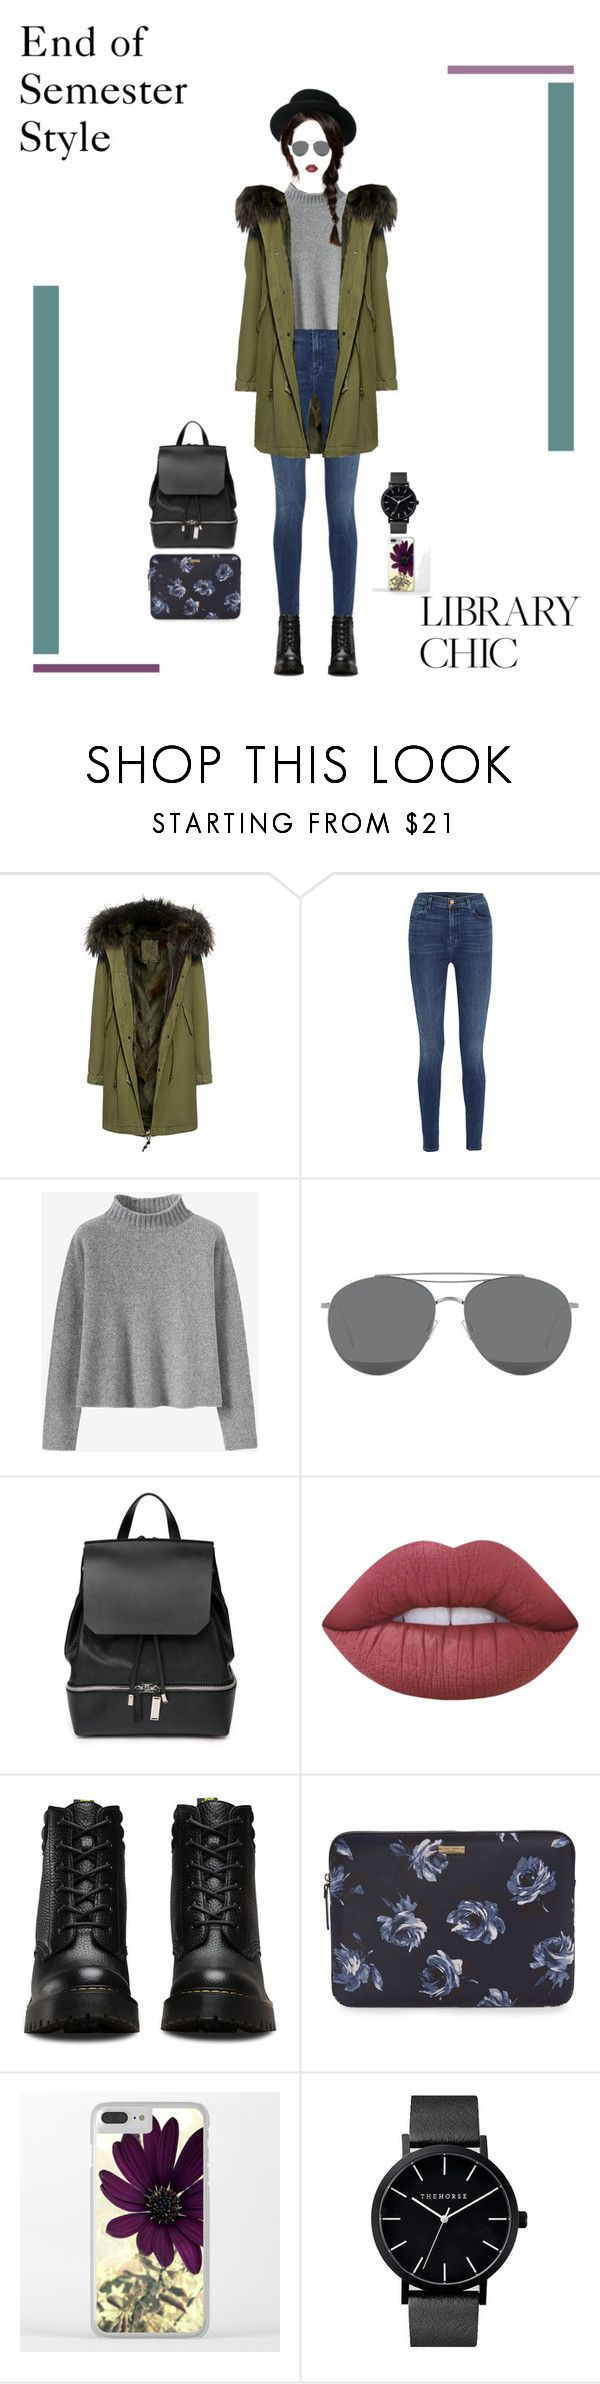 """""""End of Semester Style #1"""" by nello-hope on Polyvore featuring Mr & Mrs Italy, J Brand, Gentle Monster, COSTUME NATIONAL, Dr. Martens and Kate Spade"""